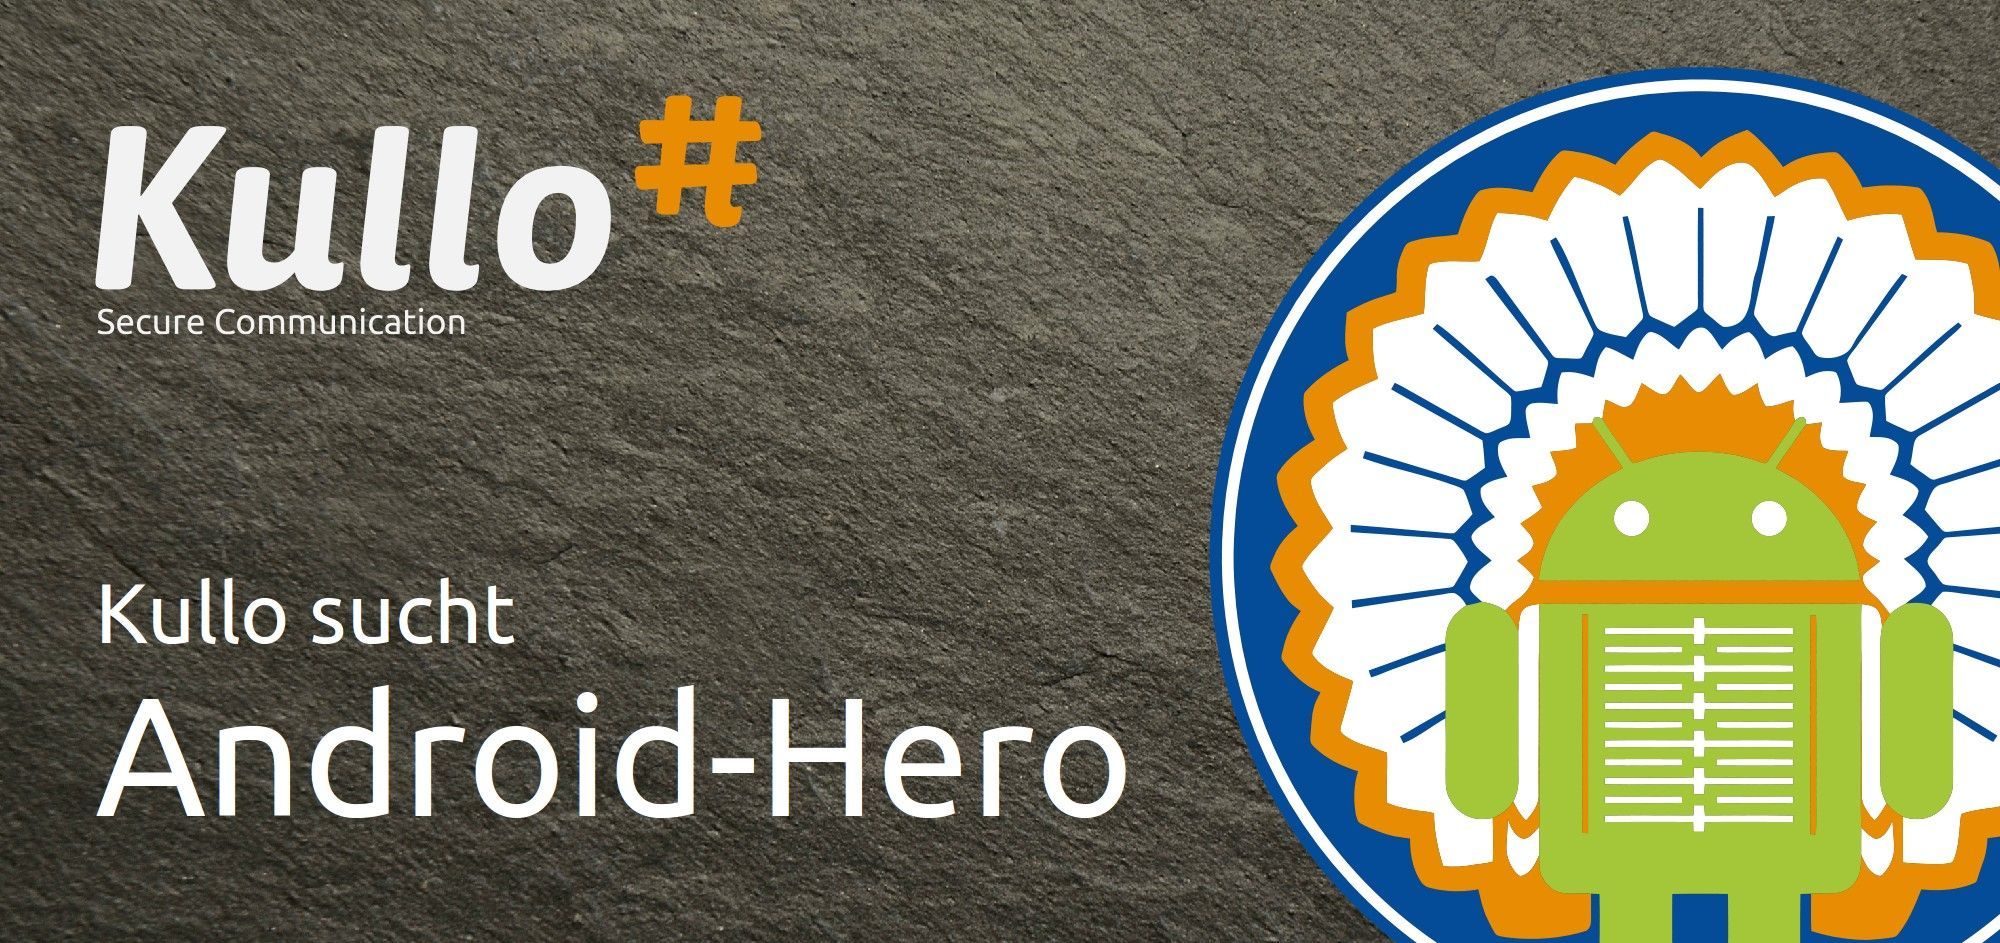 2015-04-30 Android-Hero Teaser